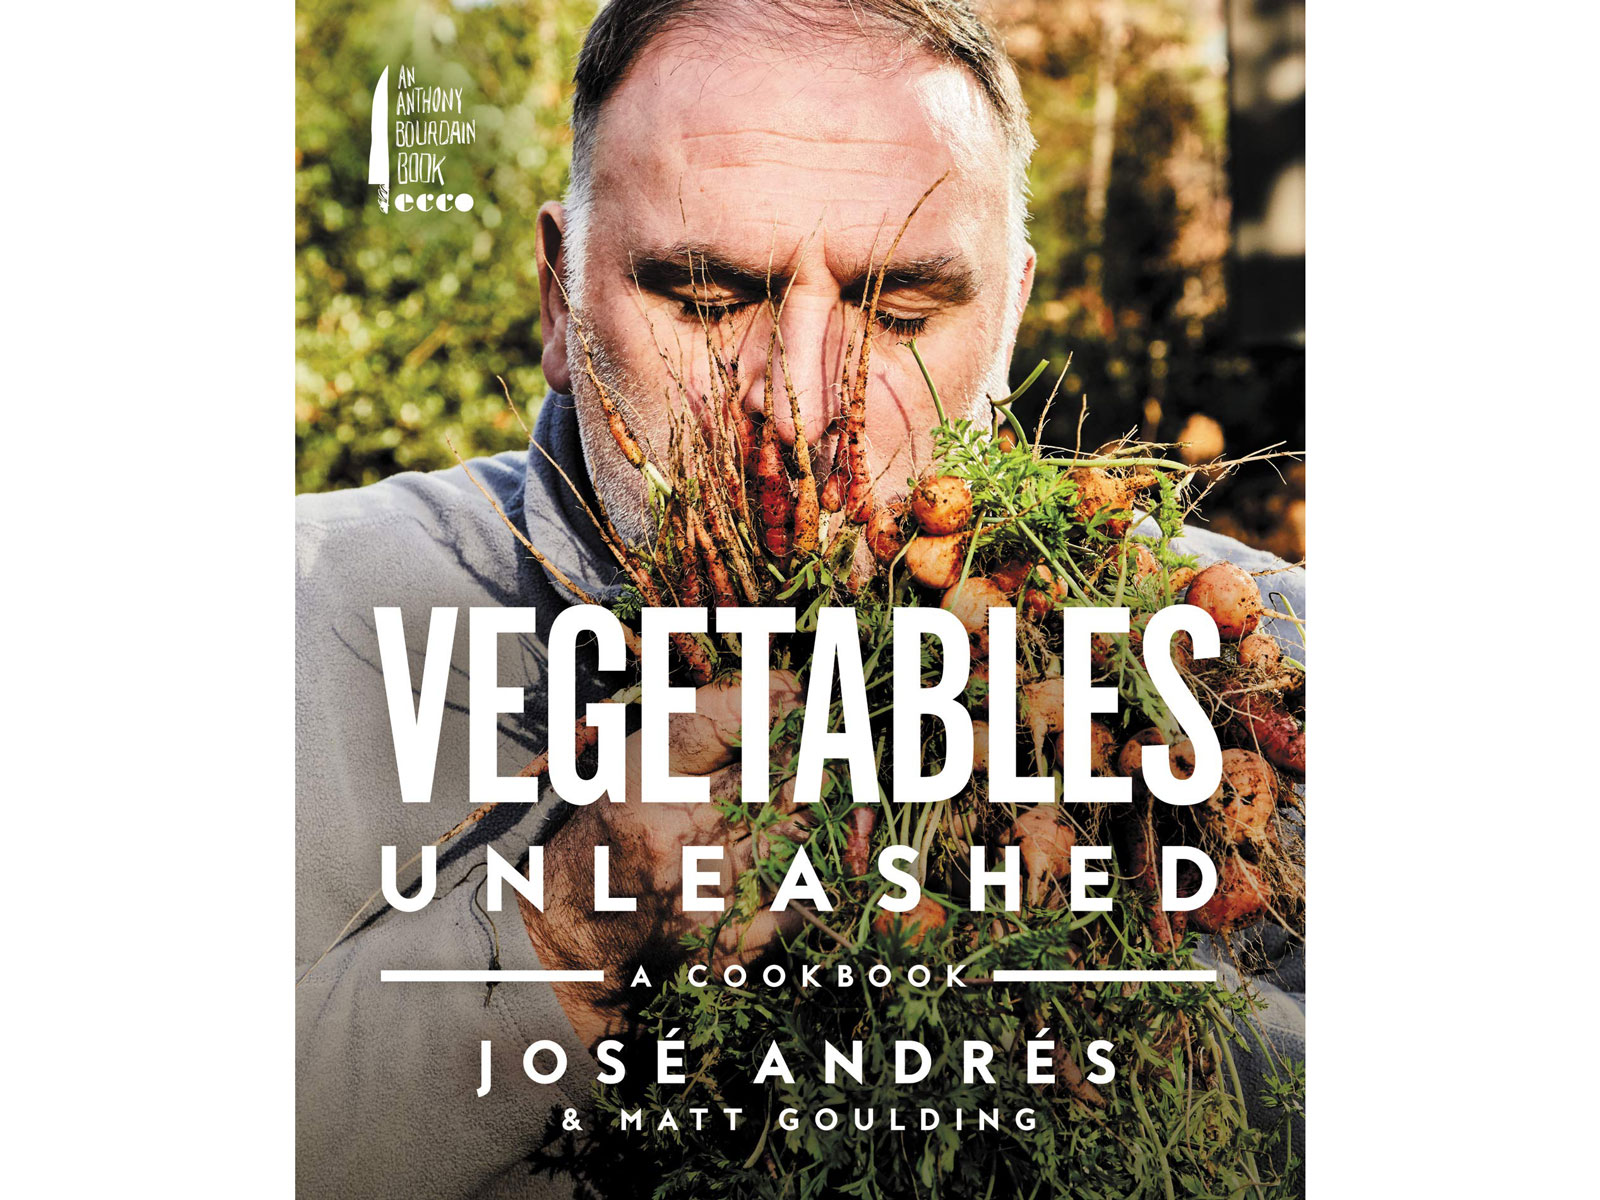 Vegetables Unleashed by José Andrés